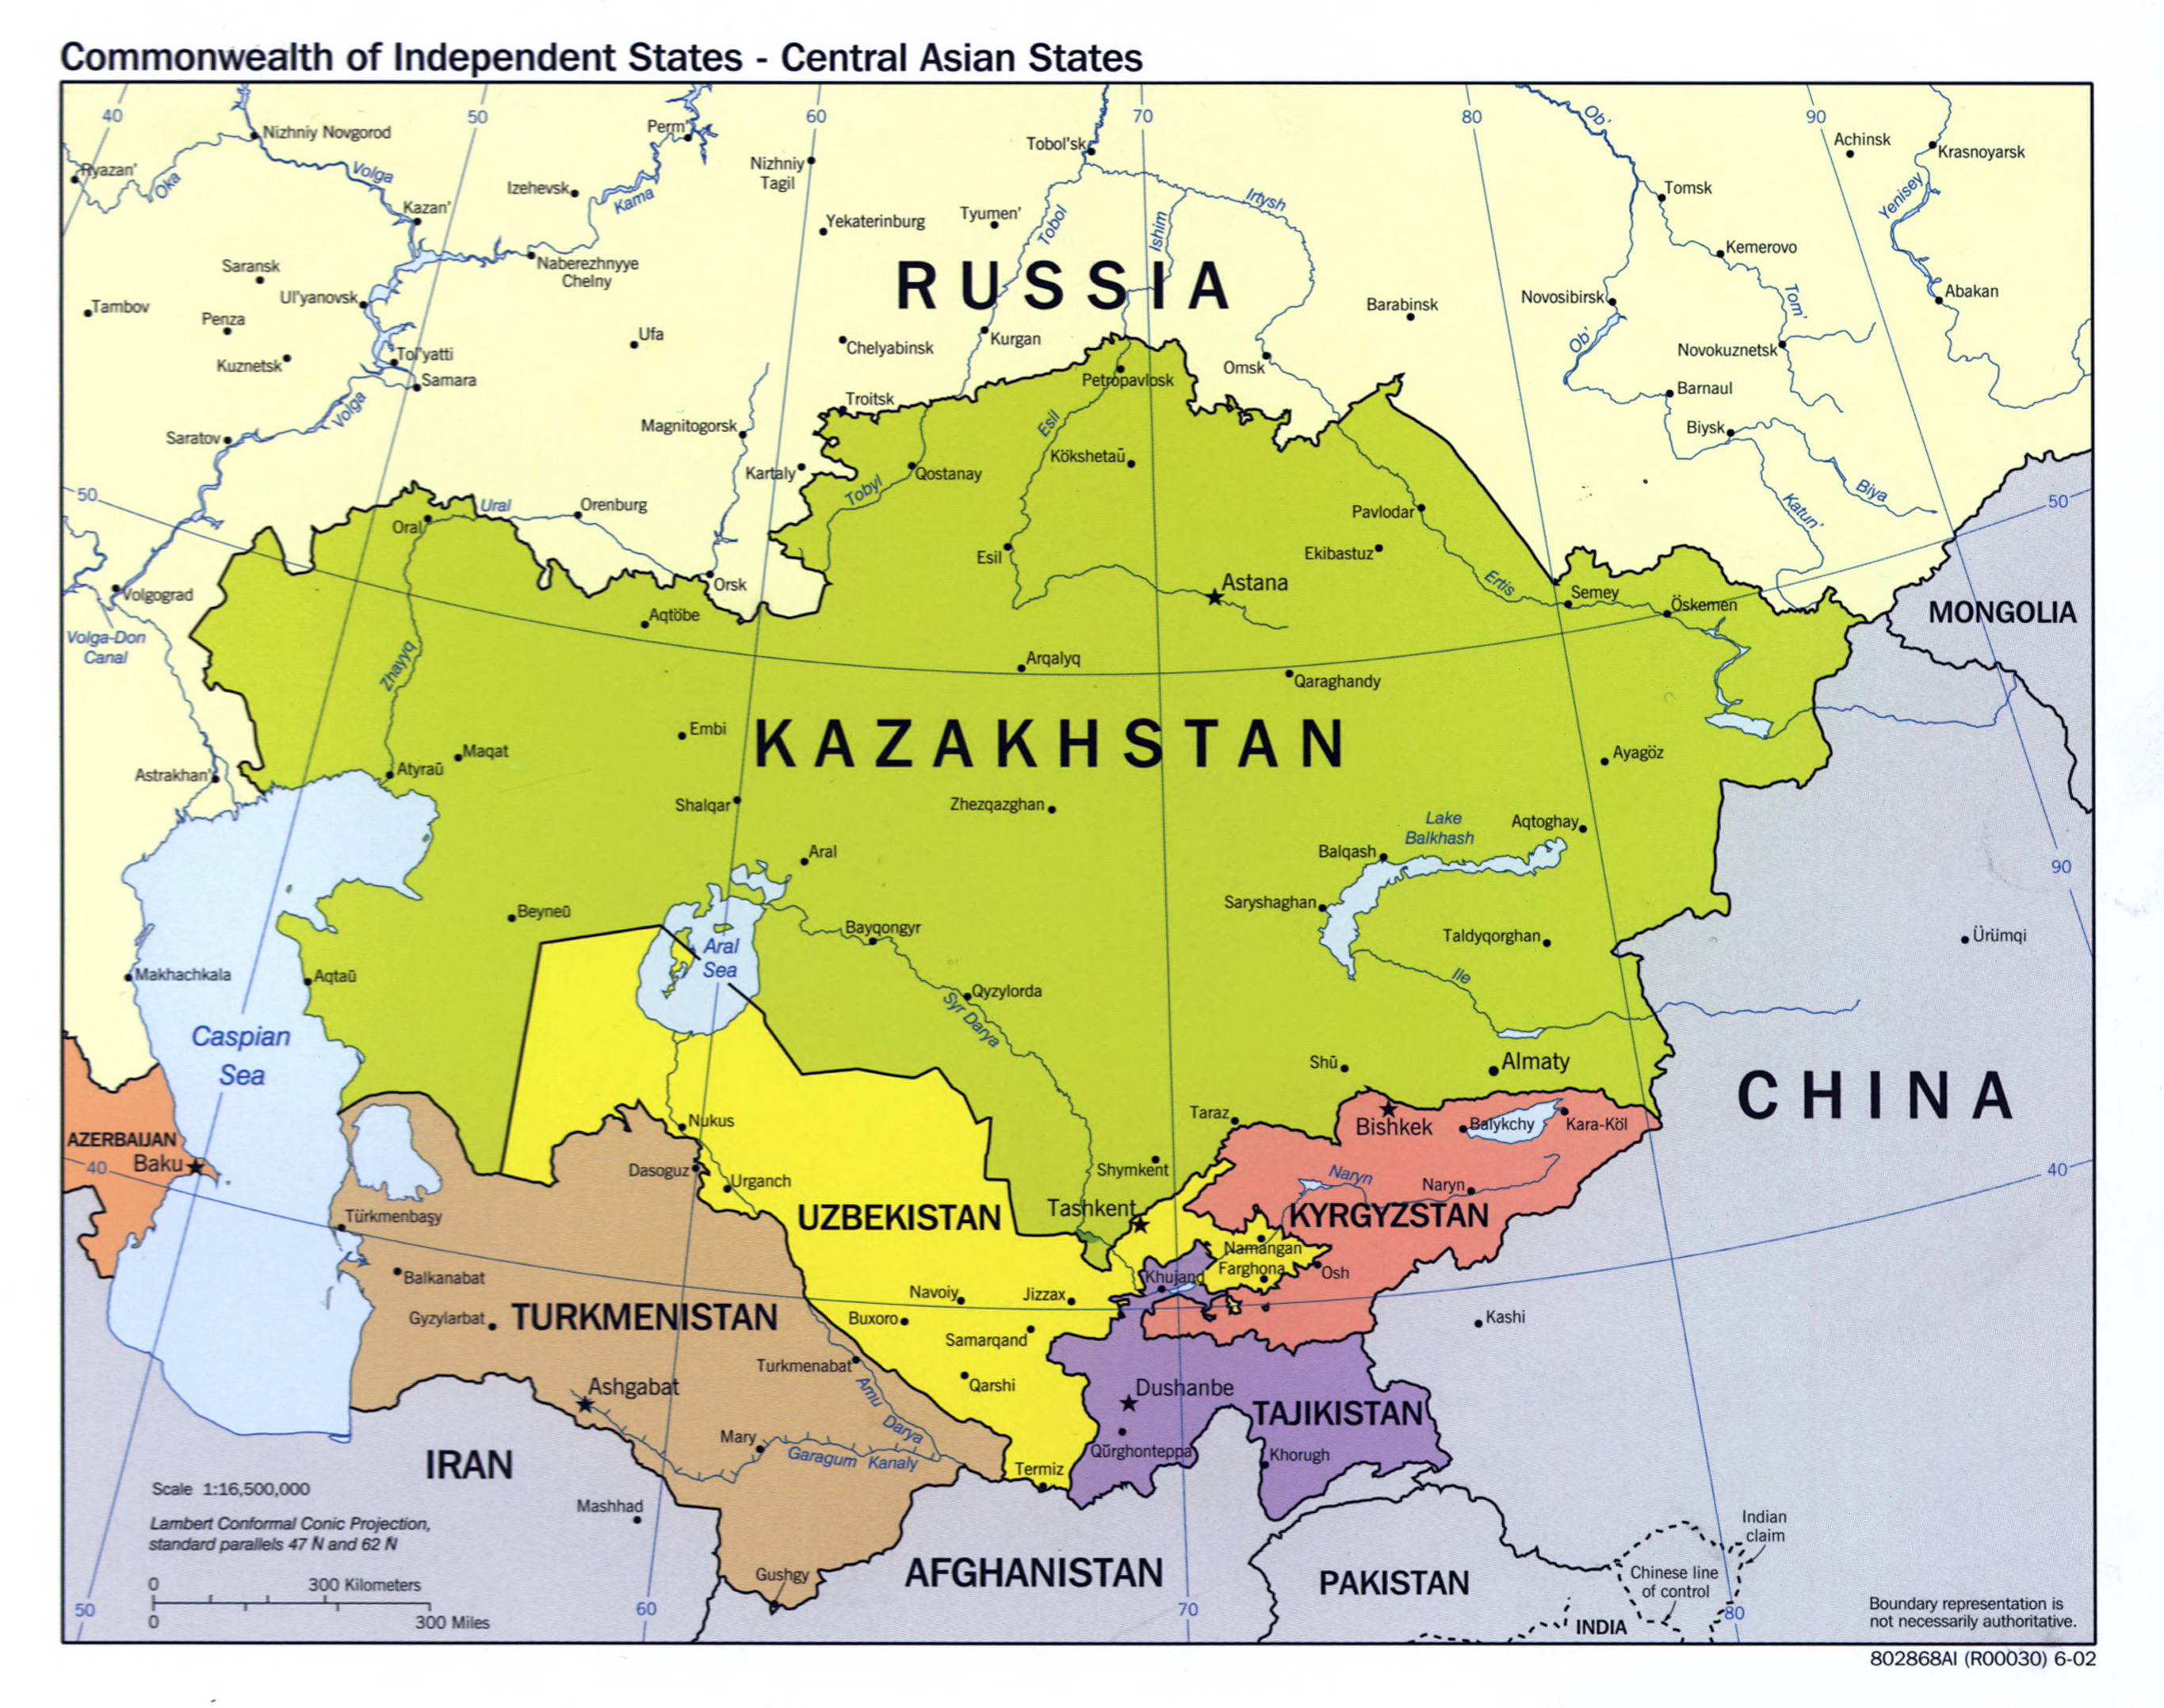 large scale political map of central asian states 2002